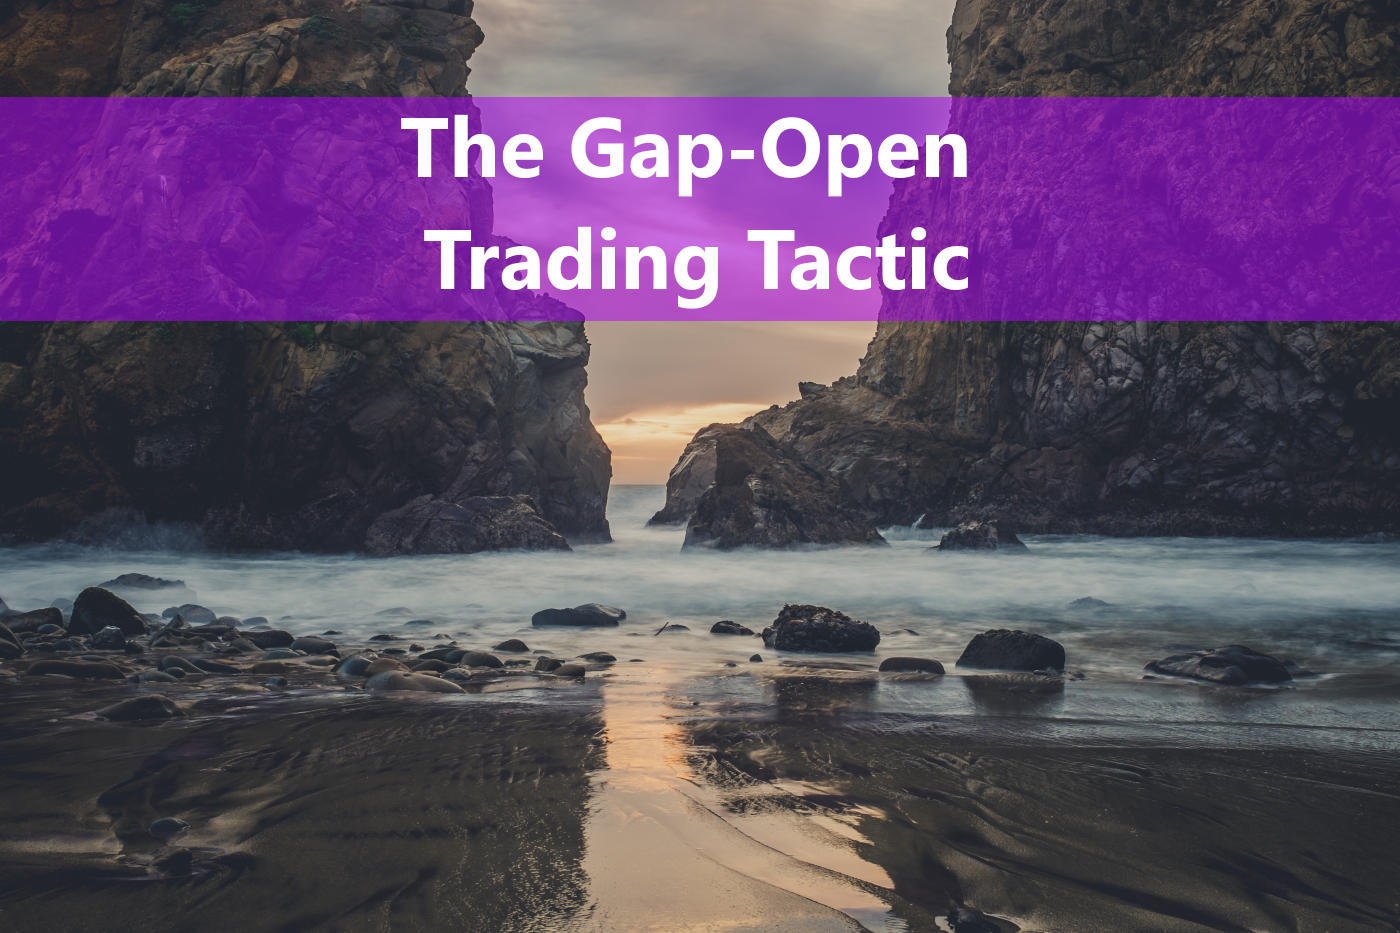 Profitable stock trading takes advantage of tactics such as the Gap-Open.